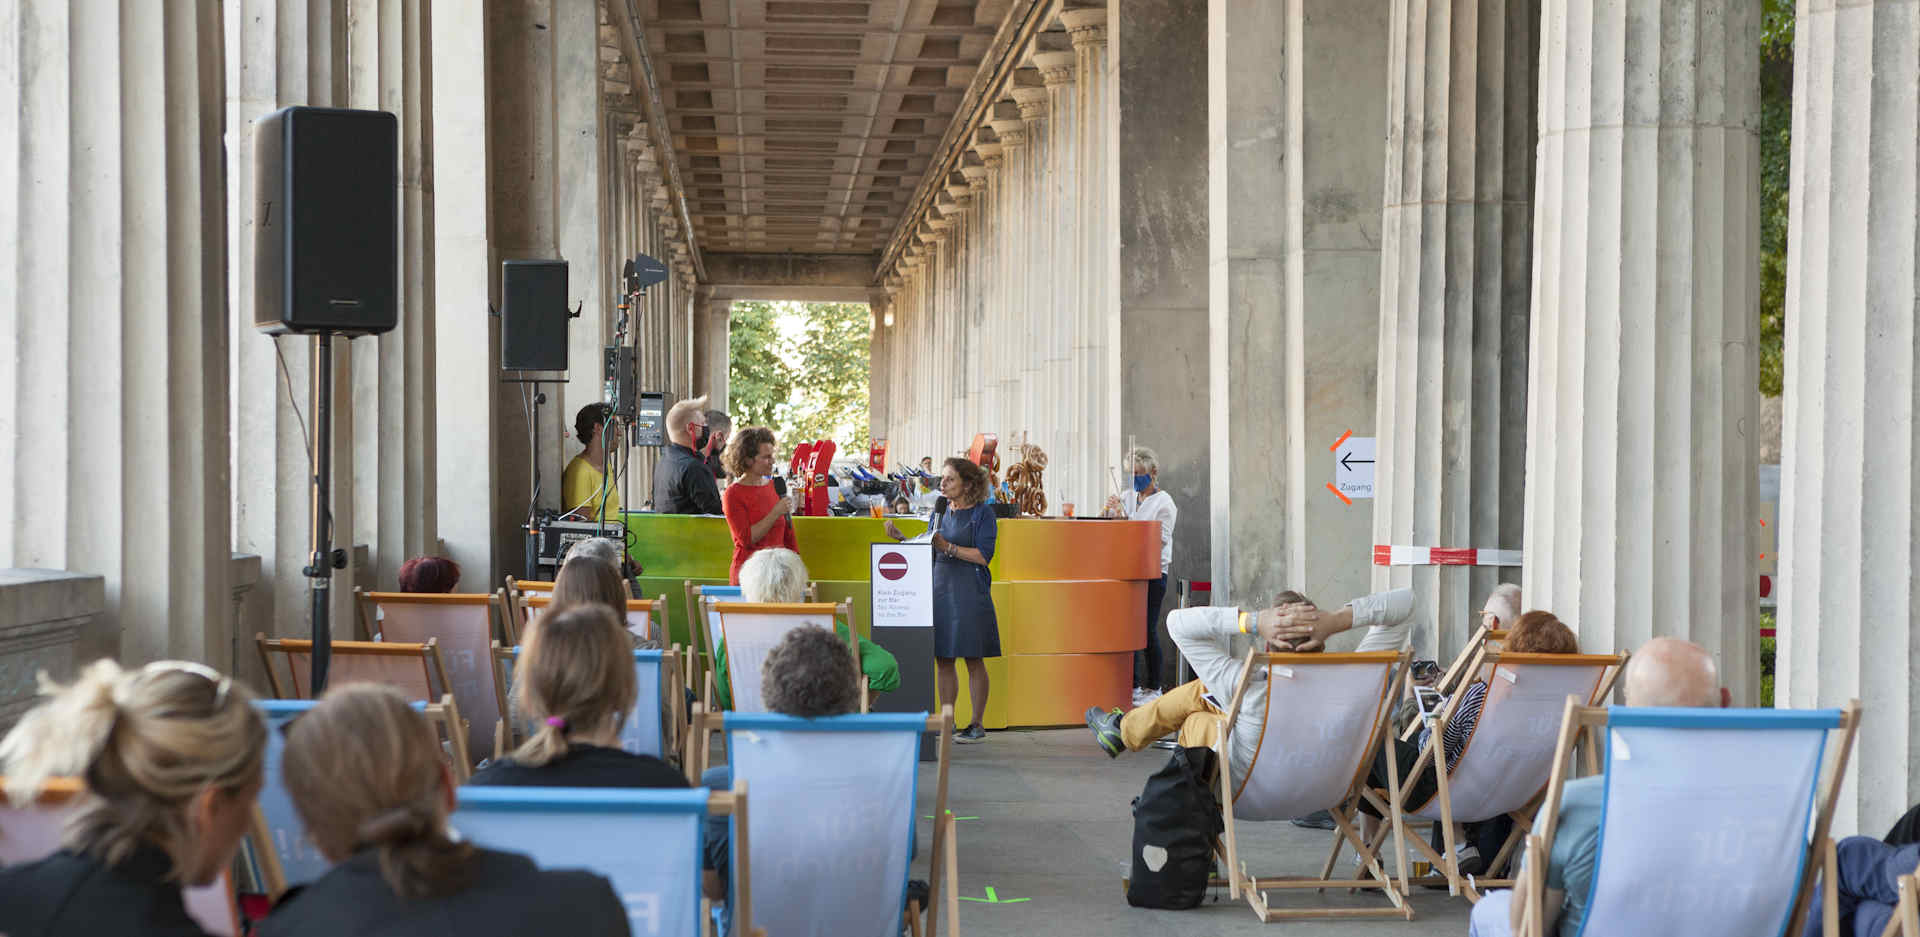 Kolonnaden Bar on the Museumsinsel Berlin from 8 July to 12 August 2021